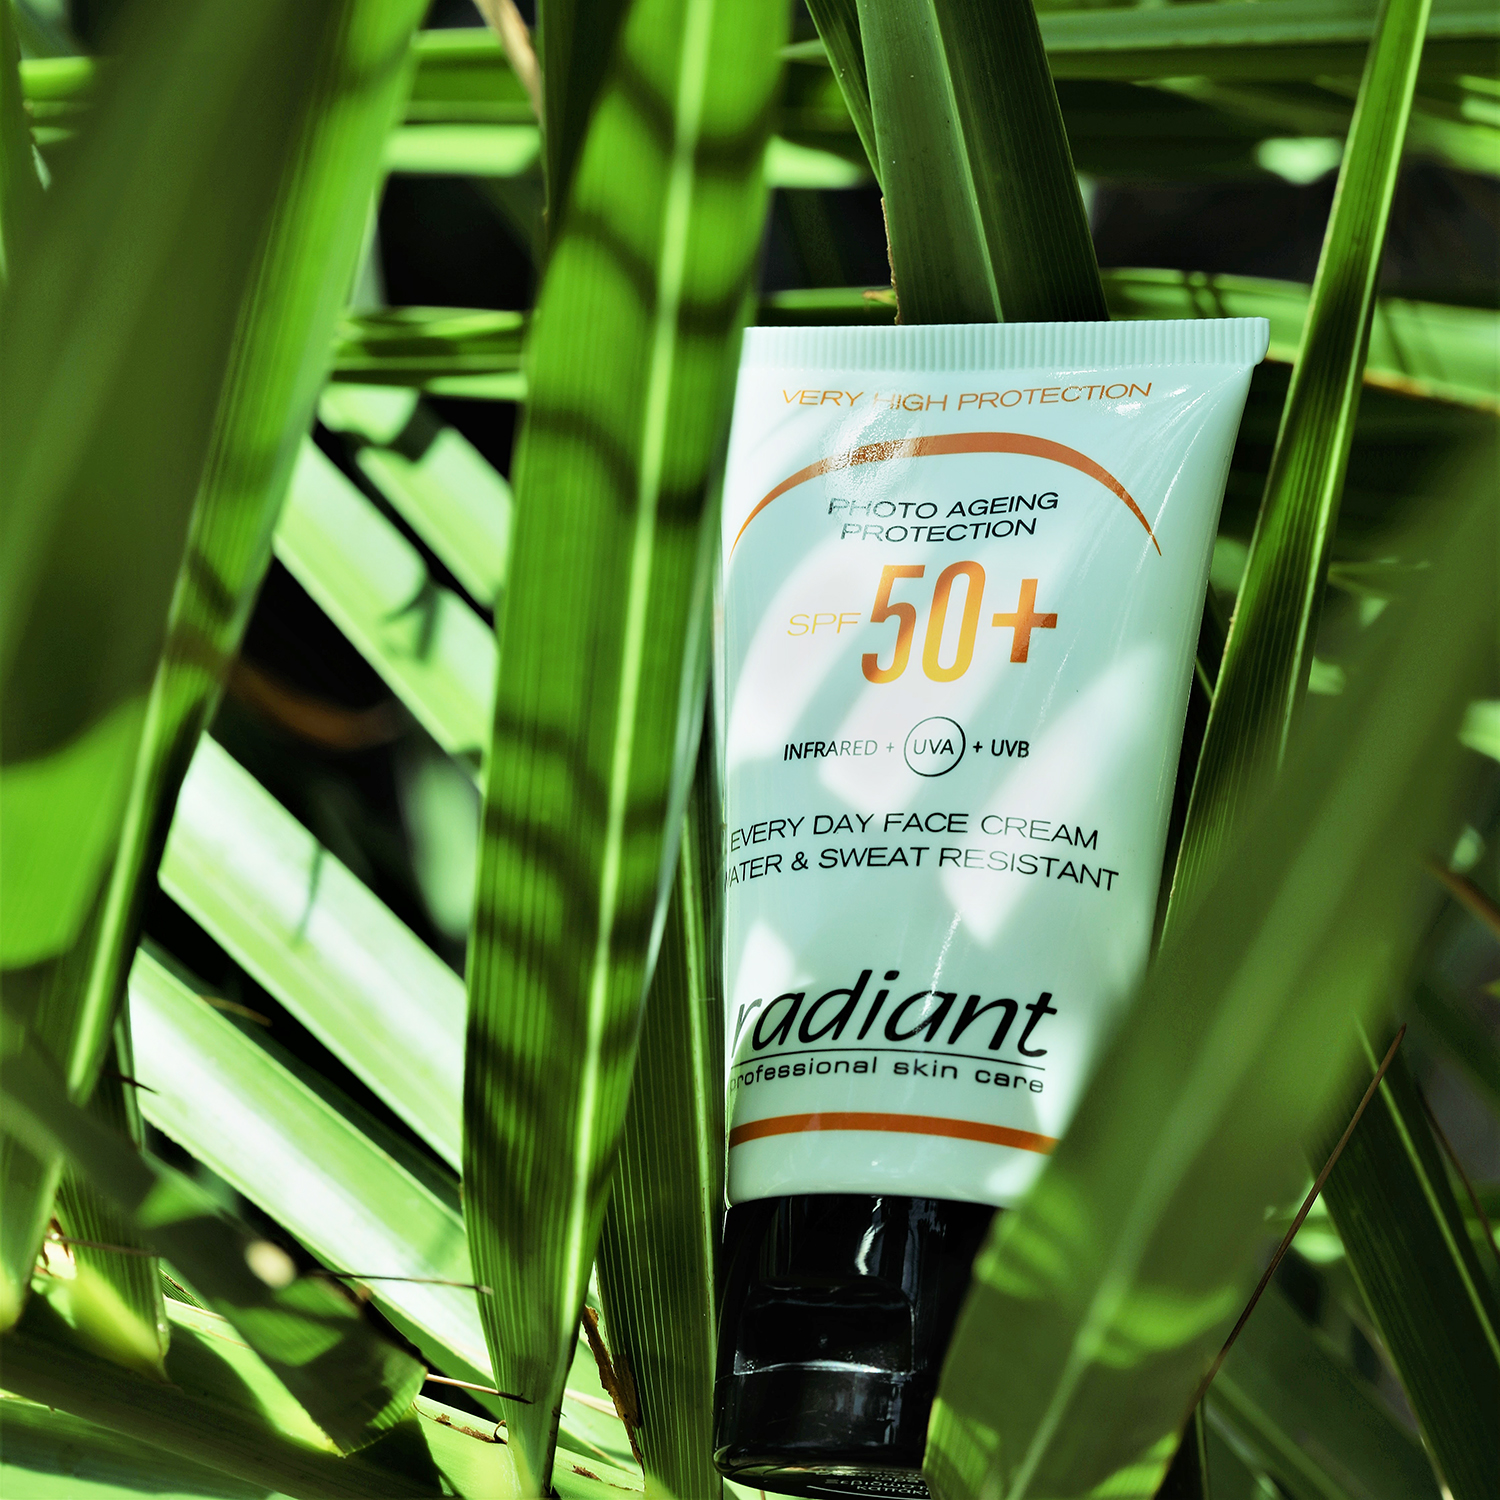 PHOTO AGEING PROTECTION SPF 50+